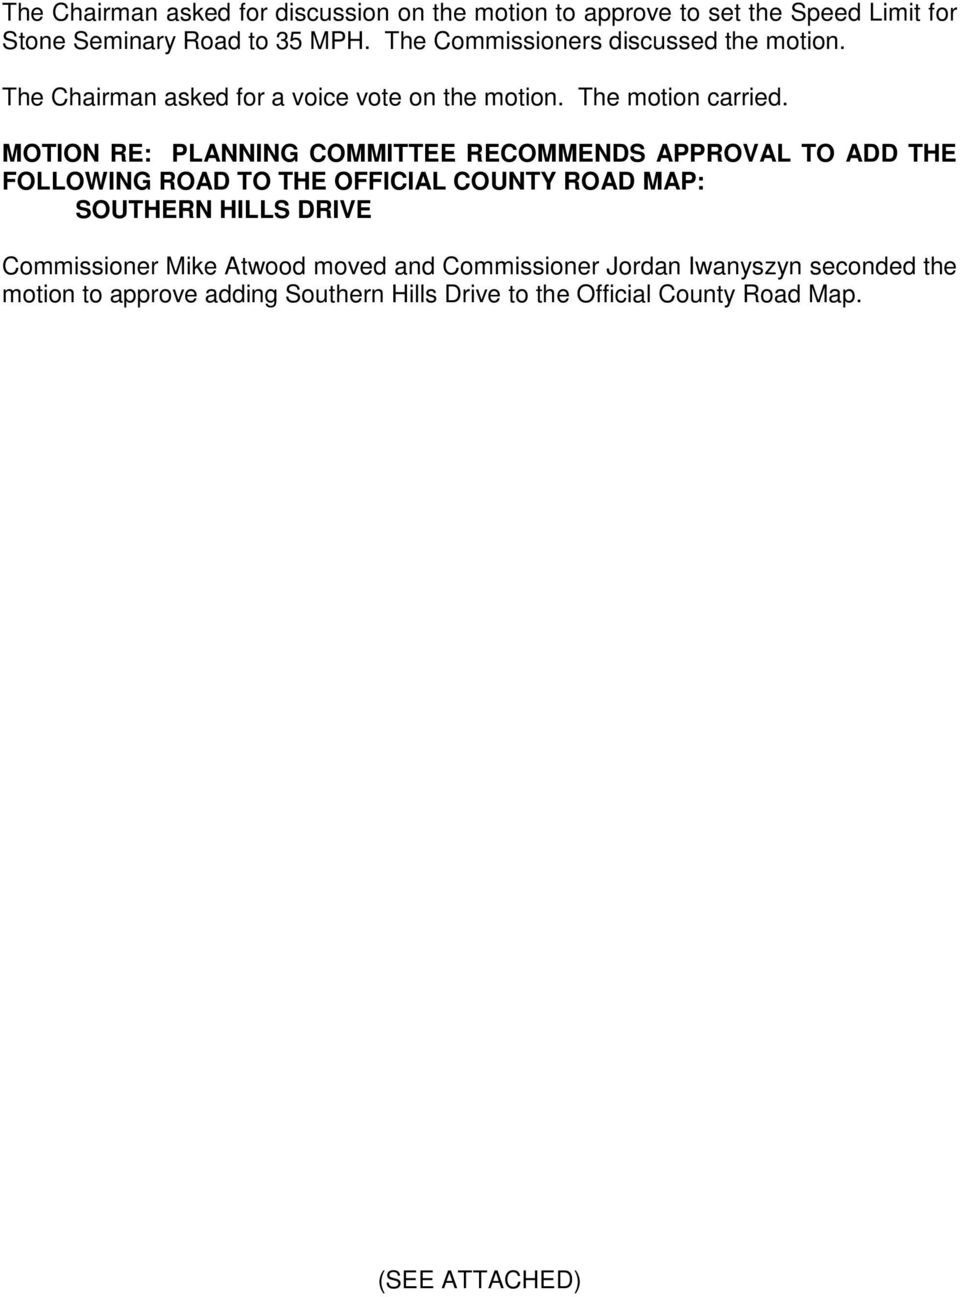 MOTION RE: PLANNING COMMITTEE RECOMMENDS APPROVAL TO ADD THE FOLLOWING ROAD TO THE OFFICIAL COUNTY ROAD MAP: SOUTHERN HILLS